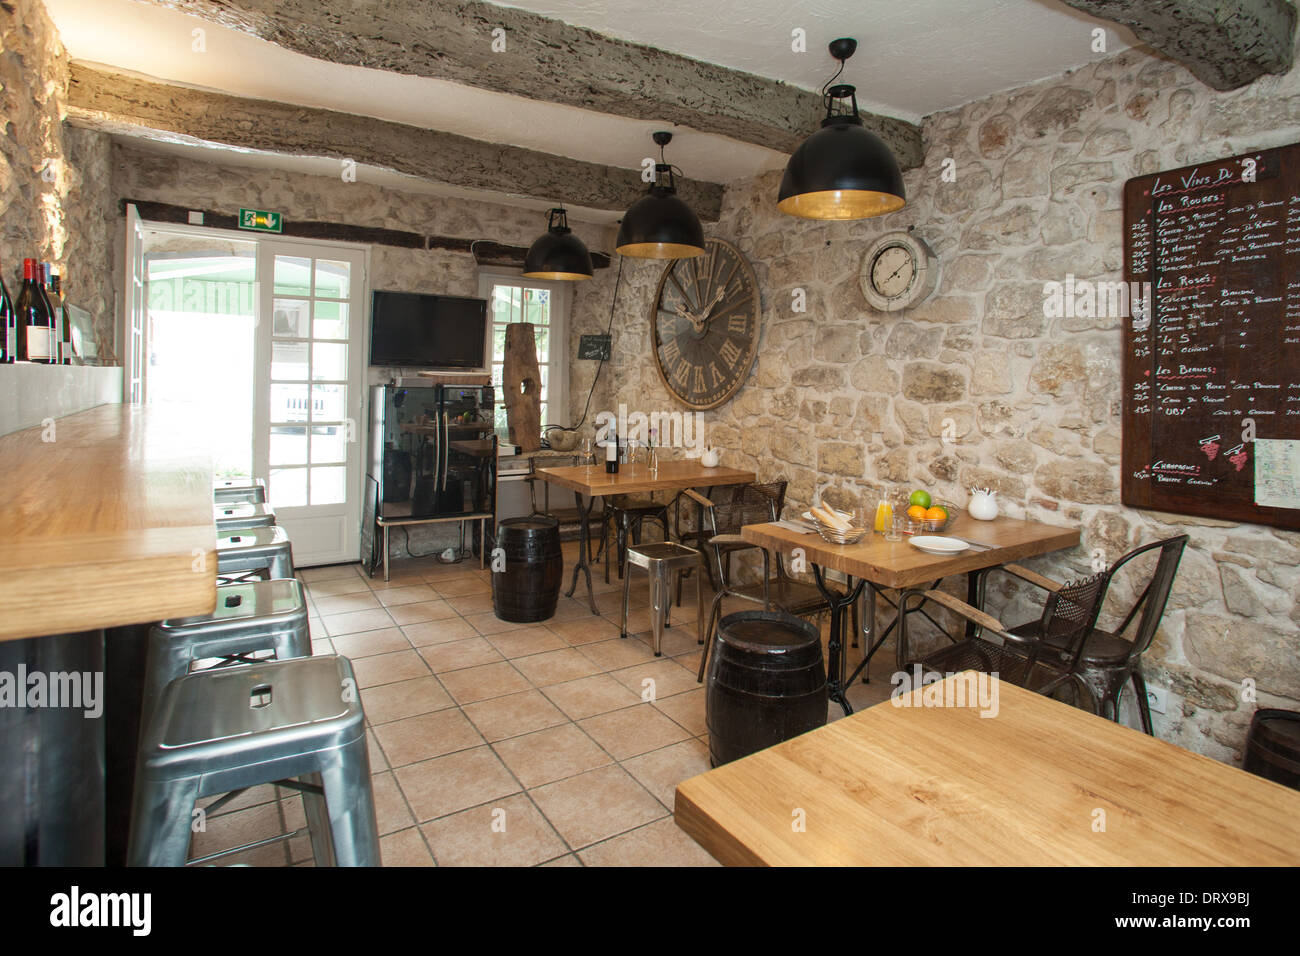 Interior of French bistro with rustic furniture. - Stock Image